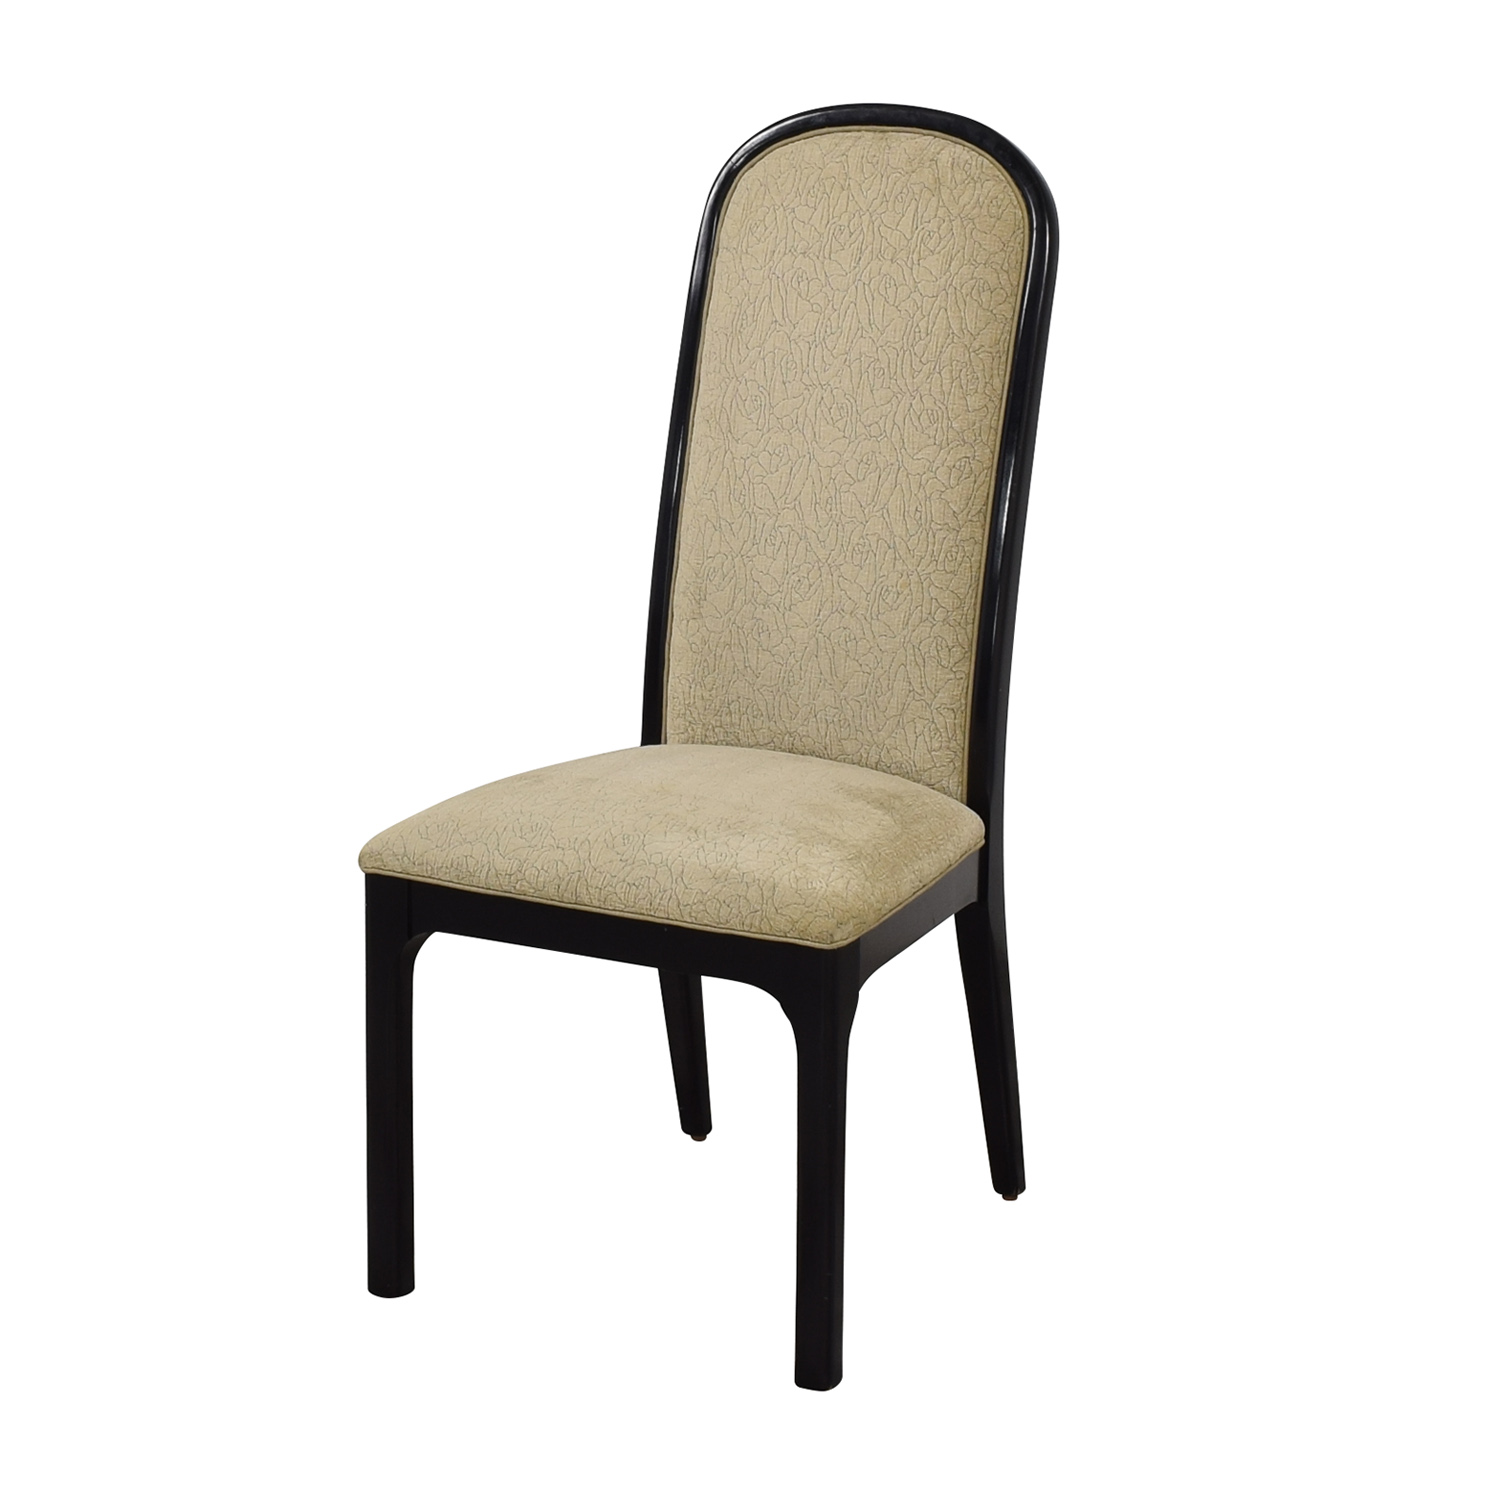 Marvelous 71 Off Baker Furniture Baker Furniture Upholstered Dining Chairs Chairs Evergreenethics Interior Chair Design Evergreenethicsorg